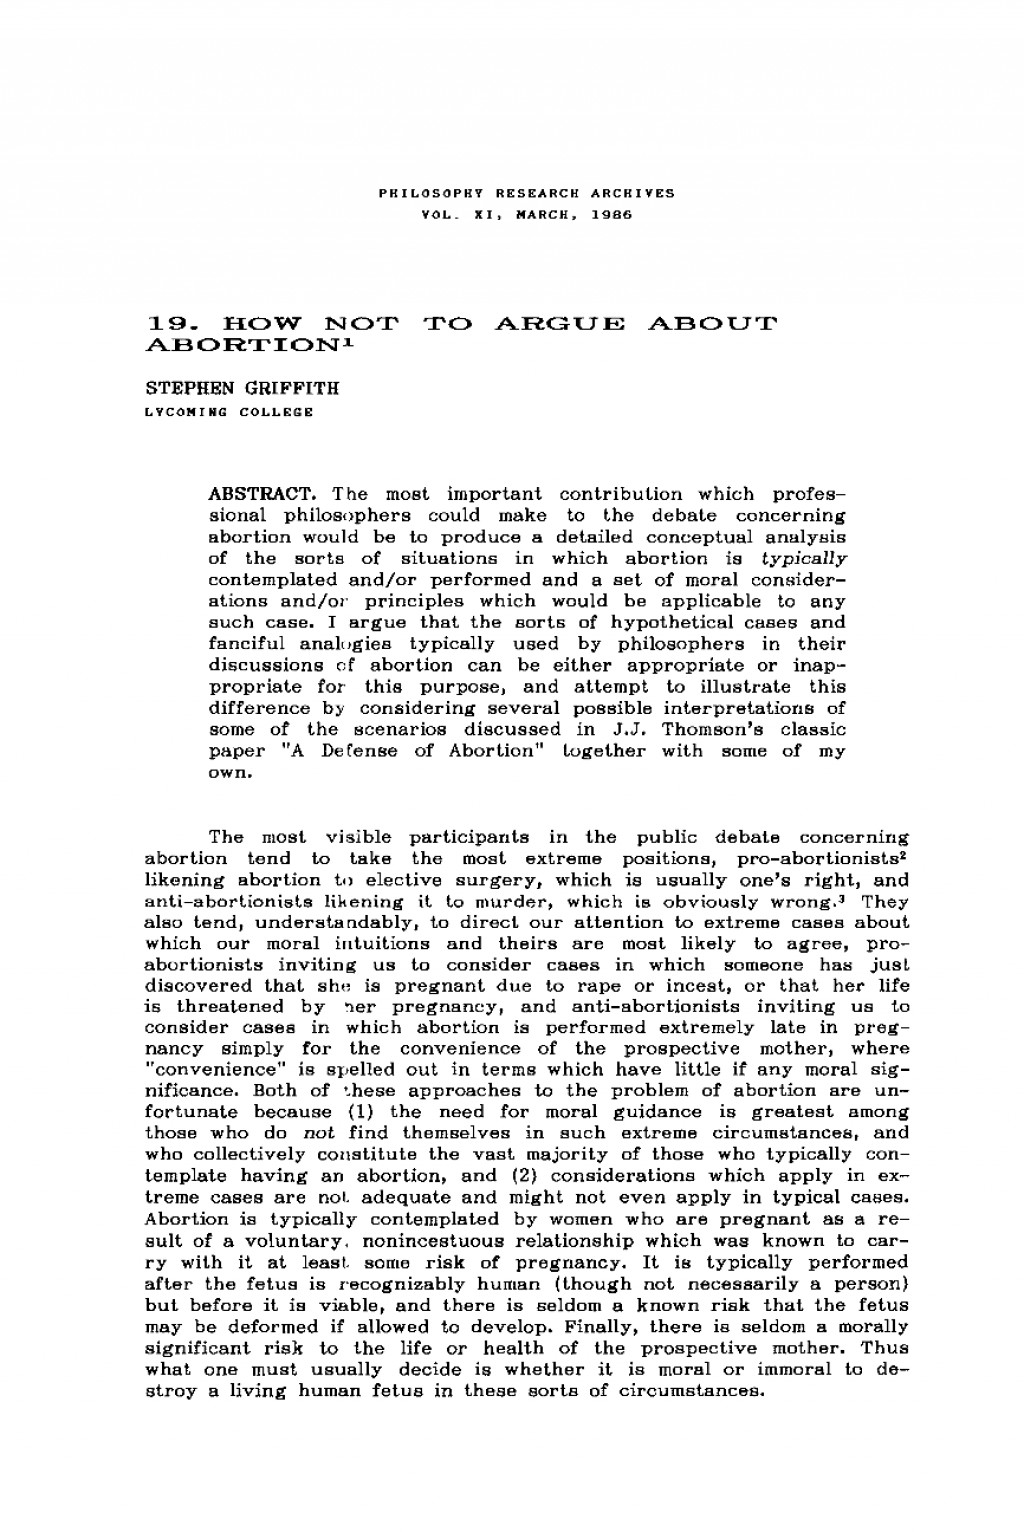 008 Pro Choice Abortion Research Paper Outline Uncategorized Essay Why Is Wrong Argument On Argumentative Oracleboss Life Unique Large